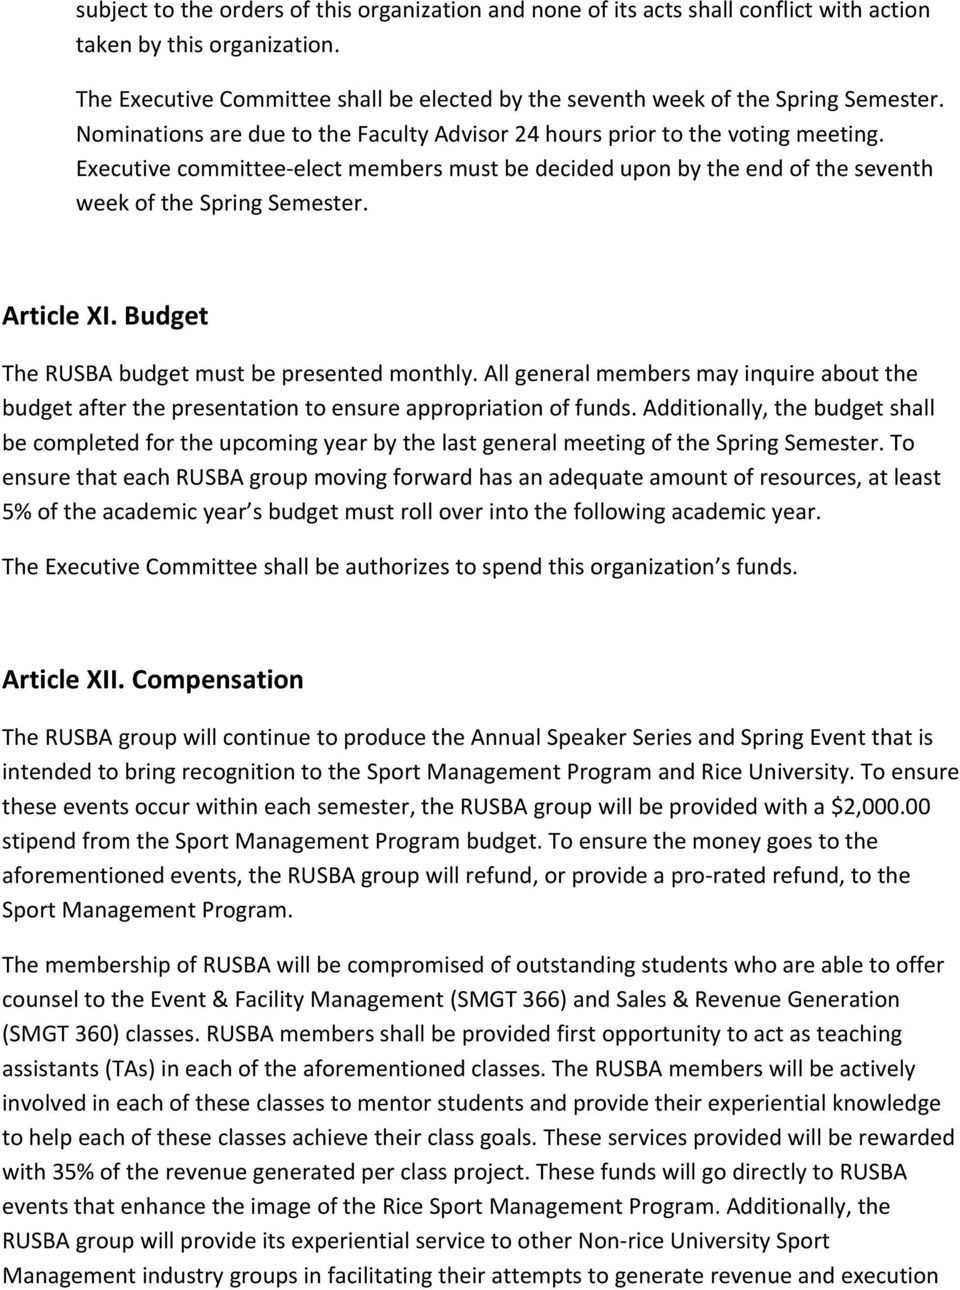 Executive committee elect members must be decided upon by the end of the seventh week of the Spring Semester. Article XI. Budget The RUSBA budget must be presented monthly.